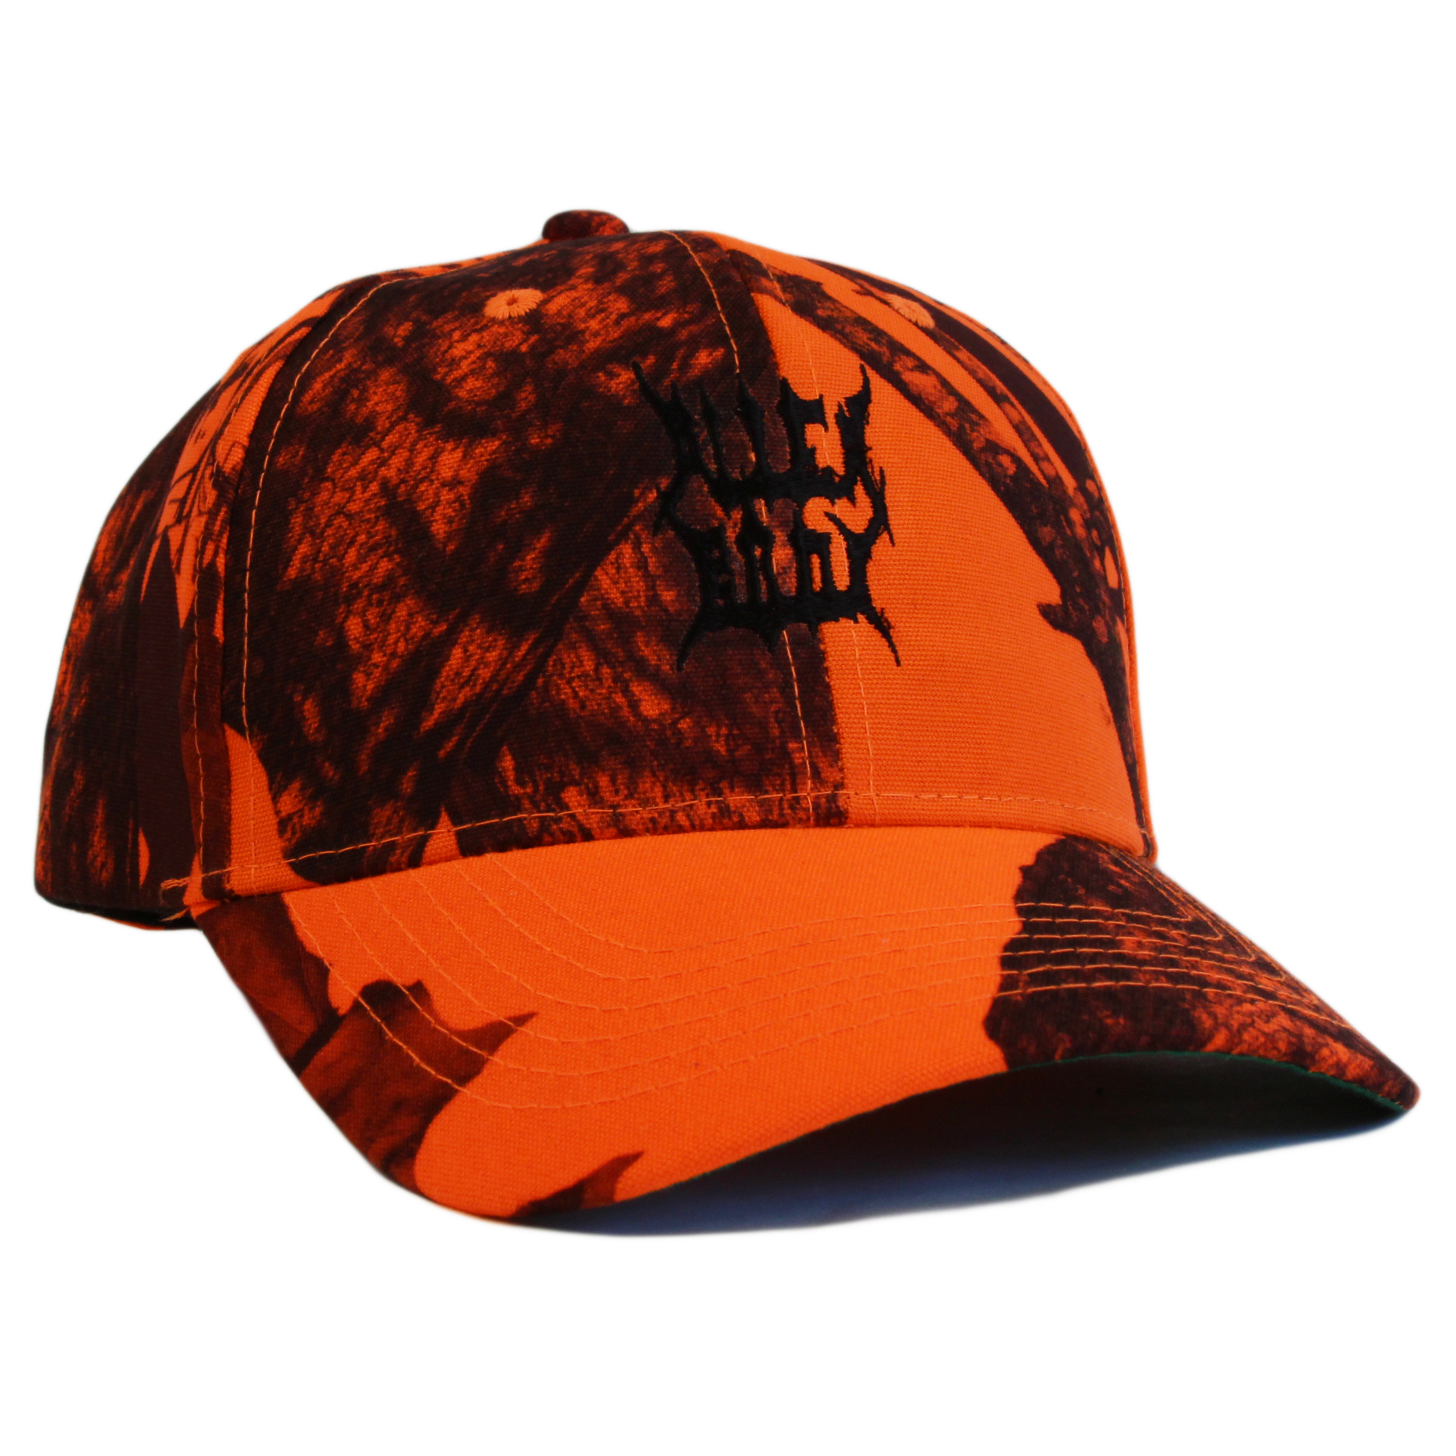 DEATH METAL HUNTING HAT